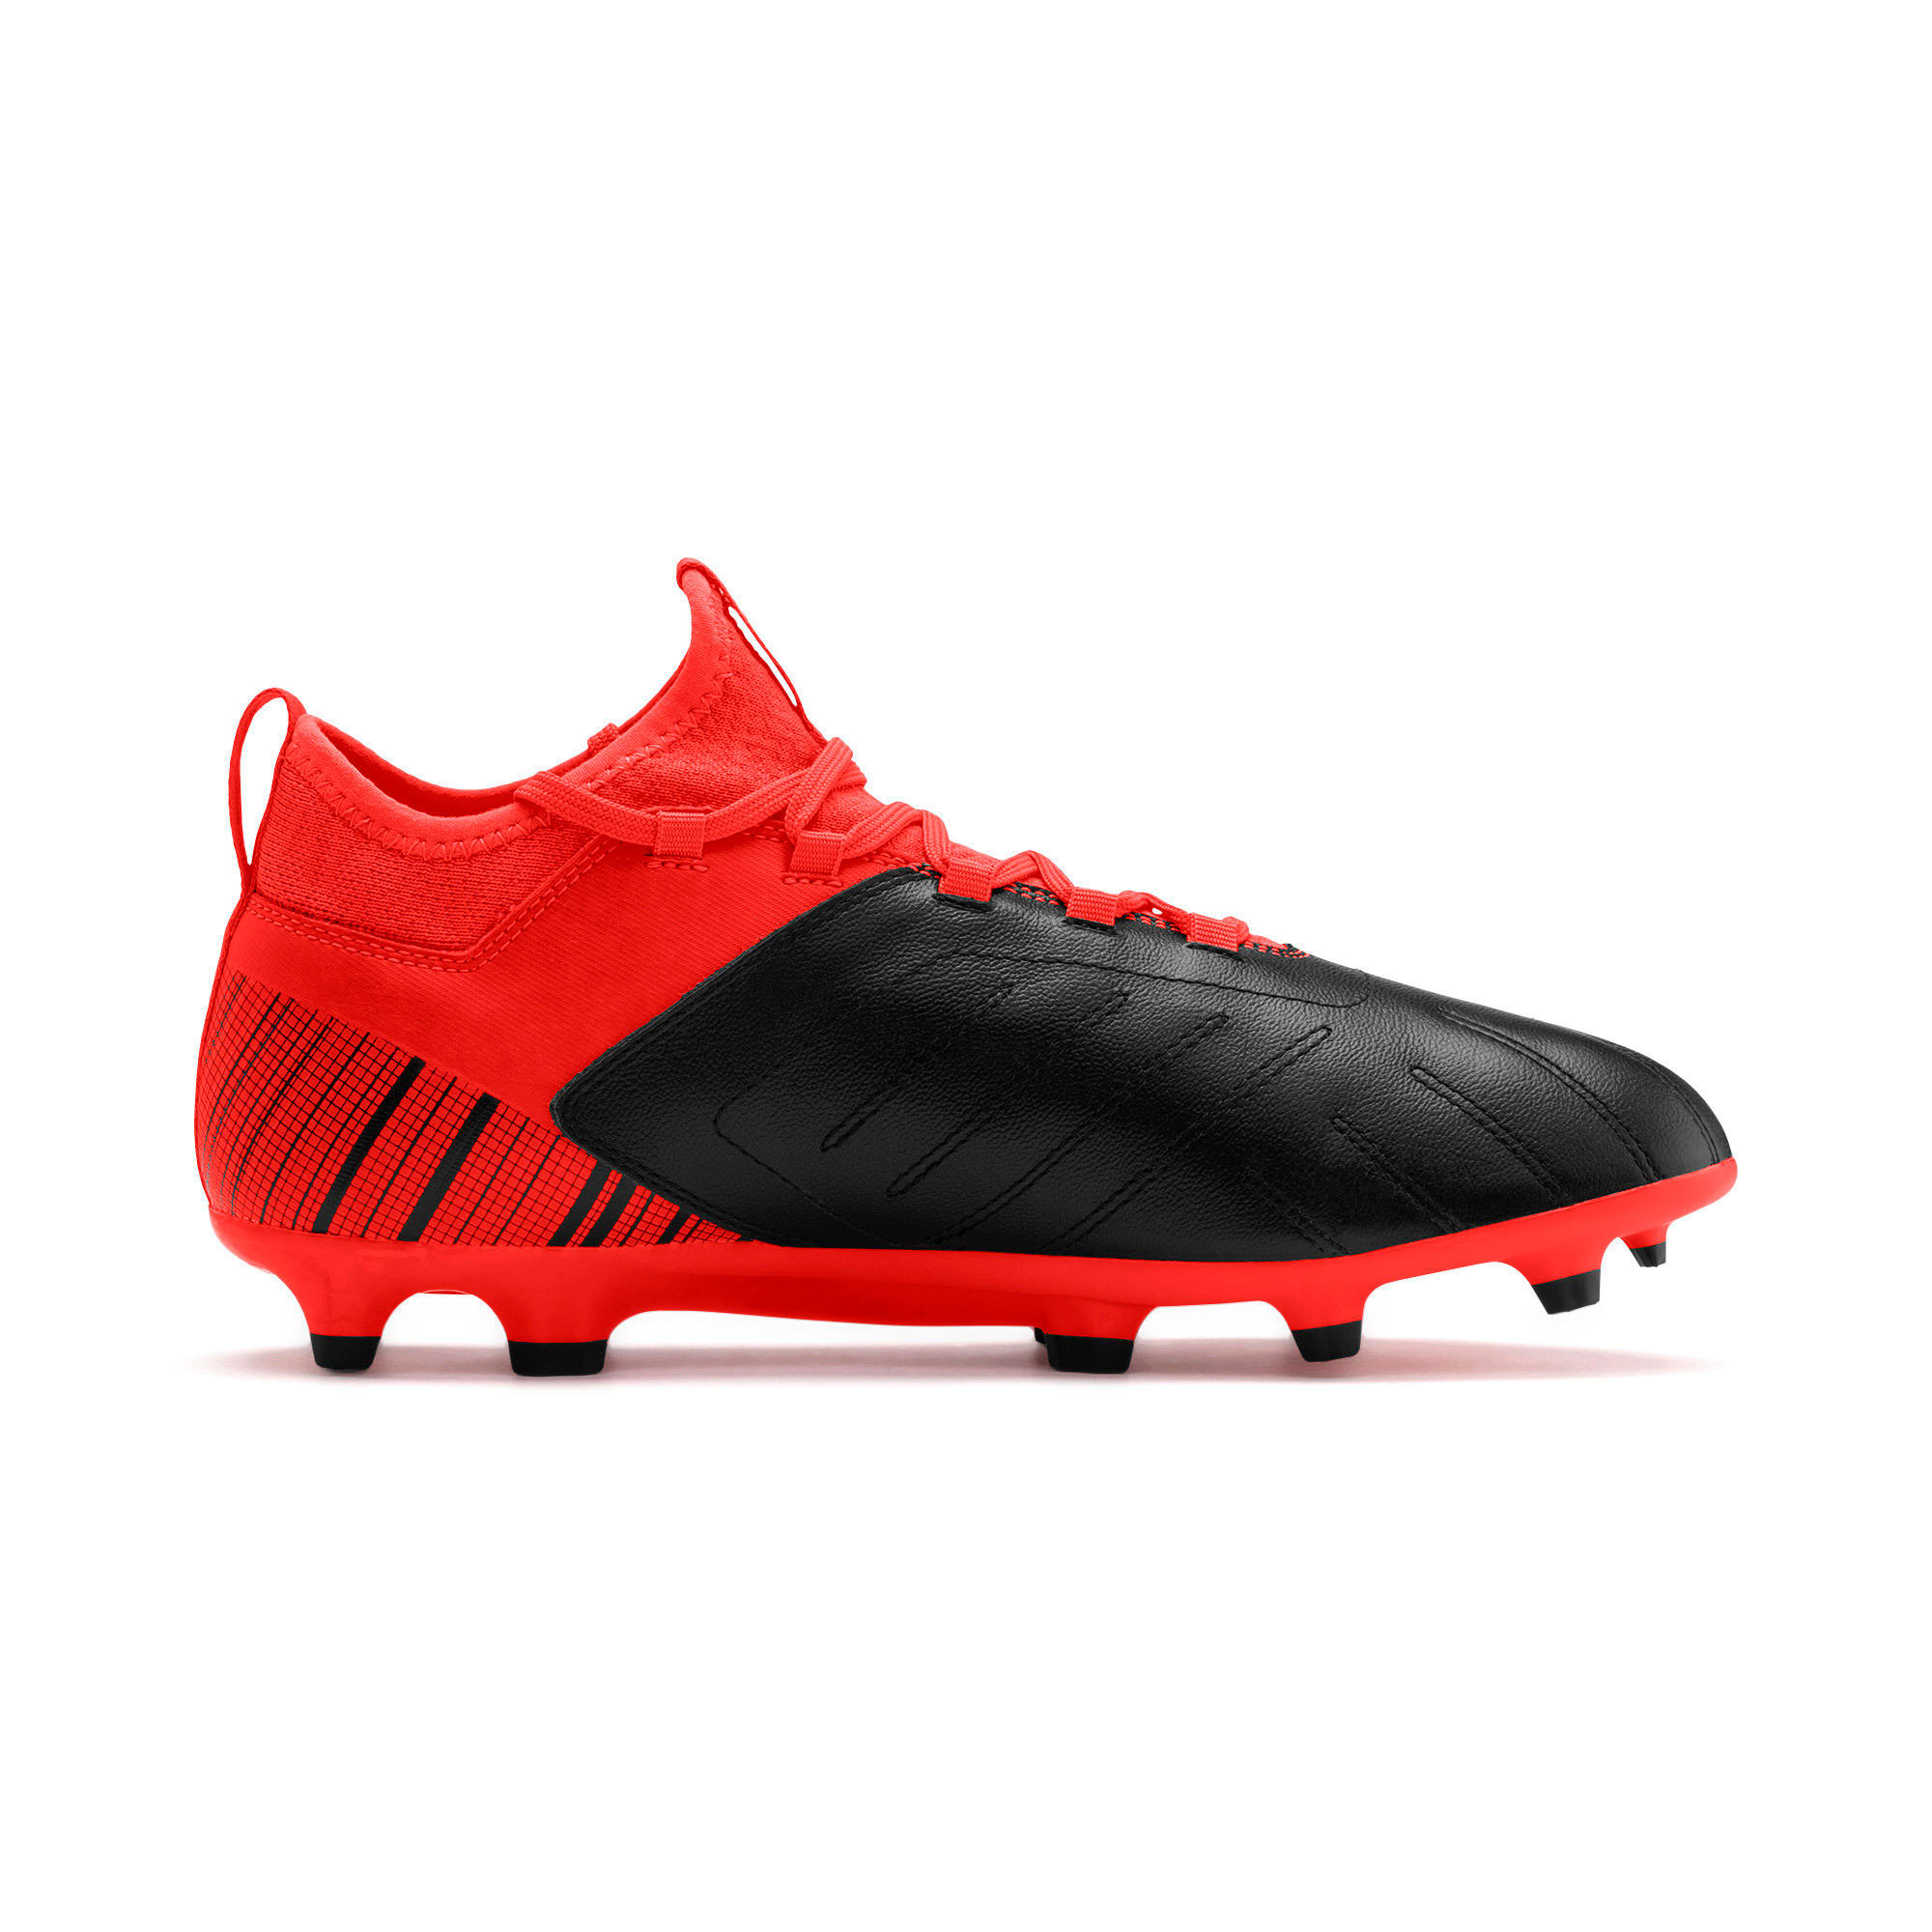 Thumbnail 6 of PUMA ONE 5.3 FG/AG Men's Football Boots, Black-Nrgy Red-Aged Silver, medium-IND